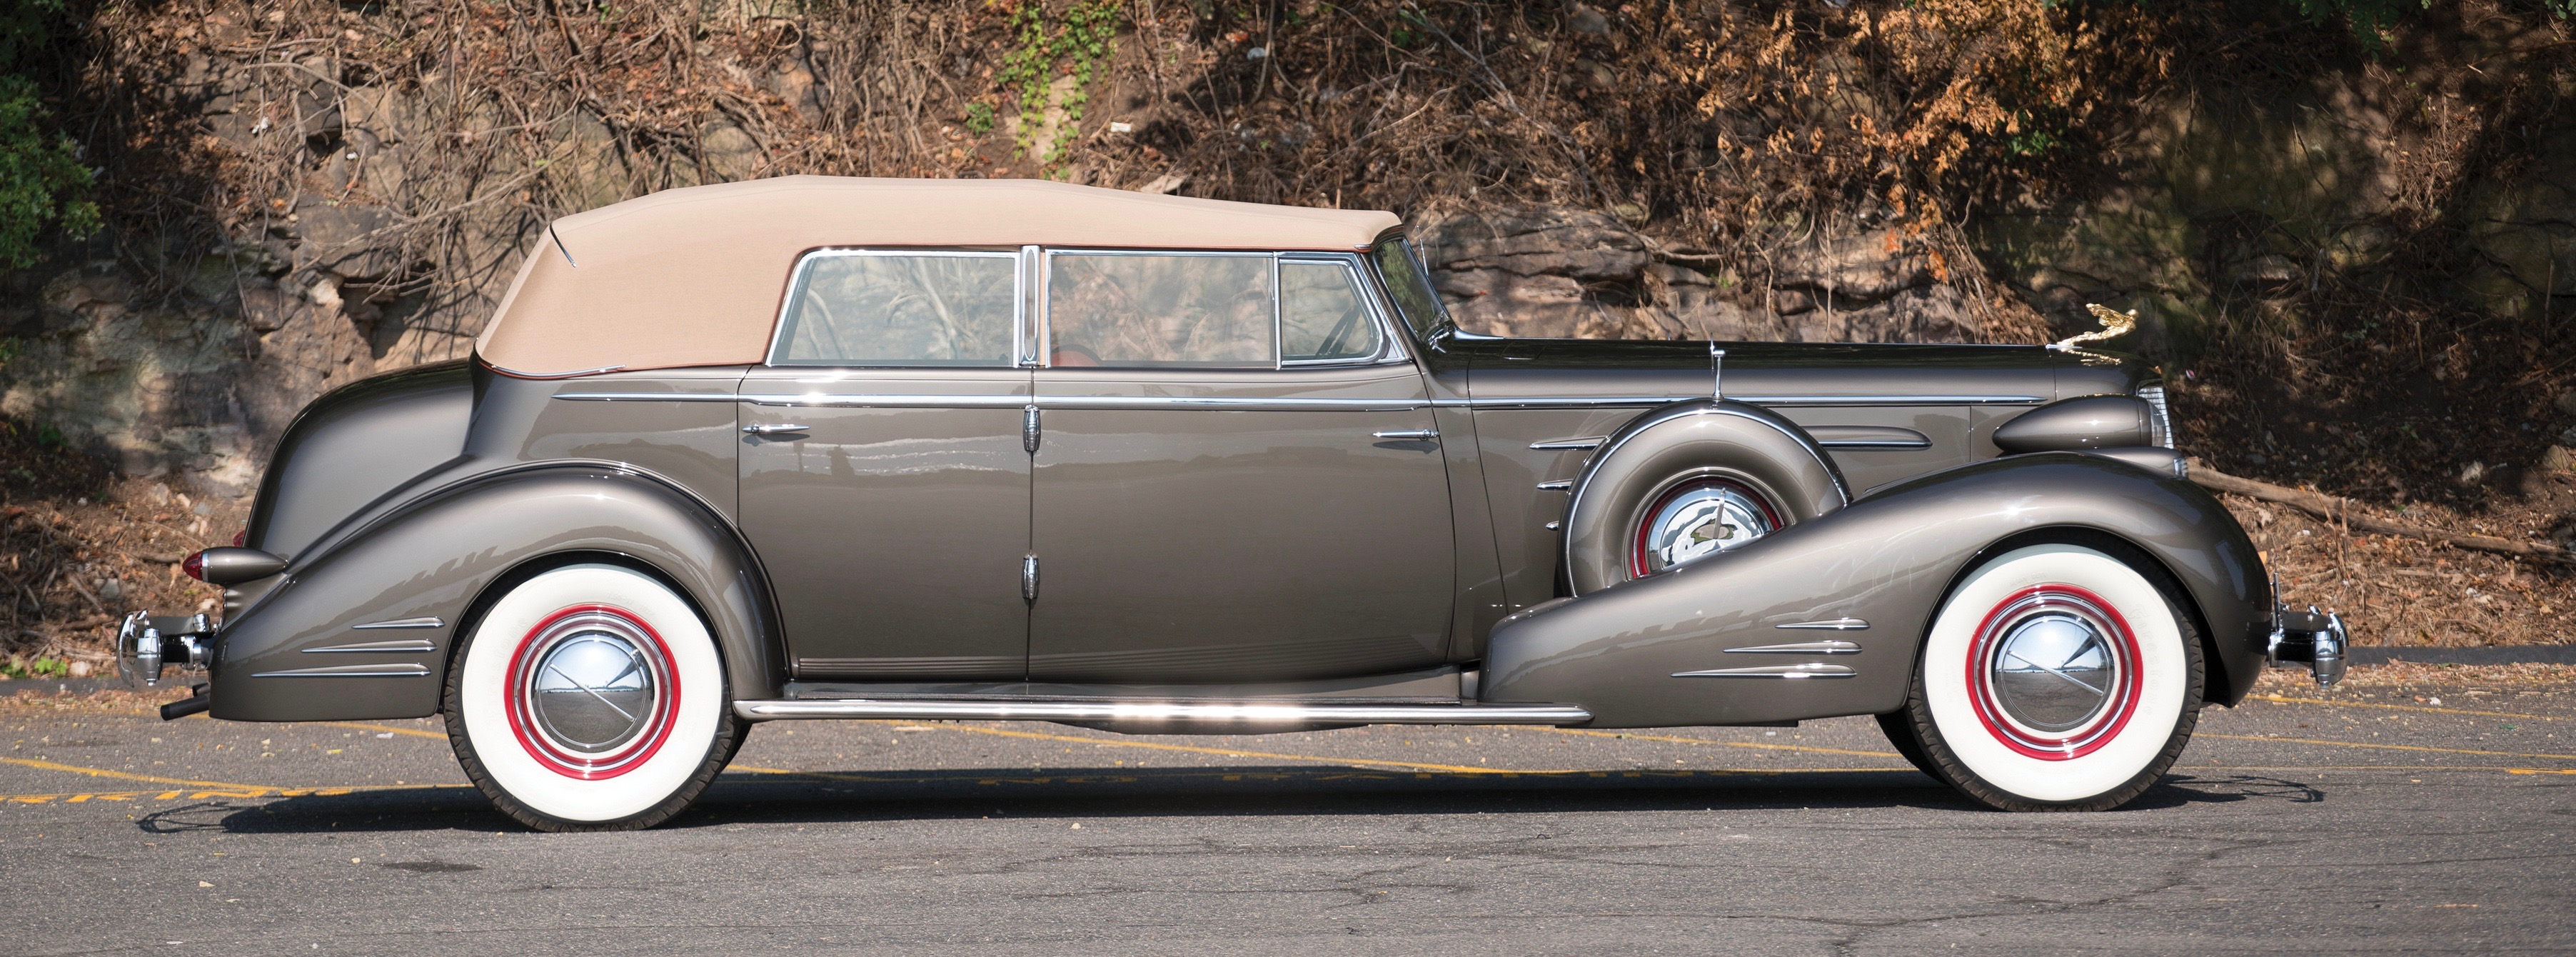 Chicago museum\'s V-16 Cadillac headlines RM Sotheby\'s Hershey sale ...